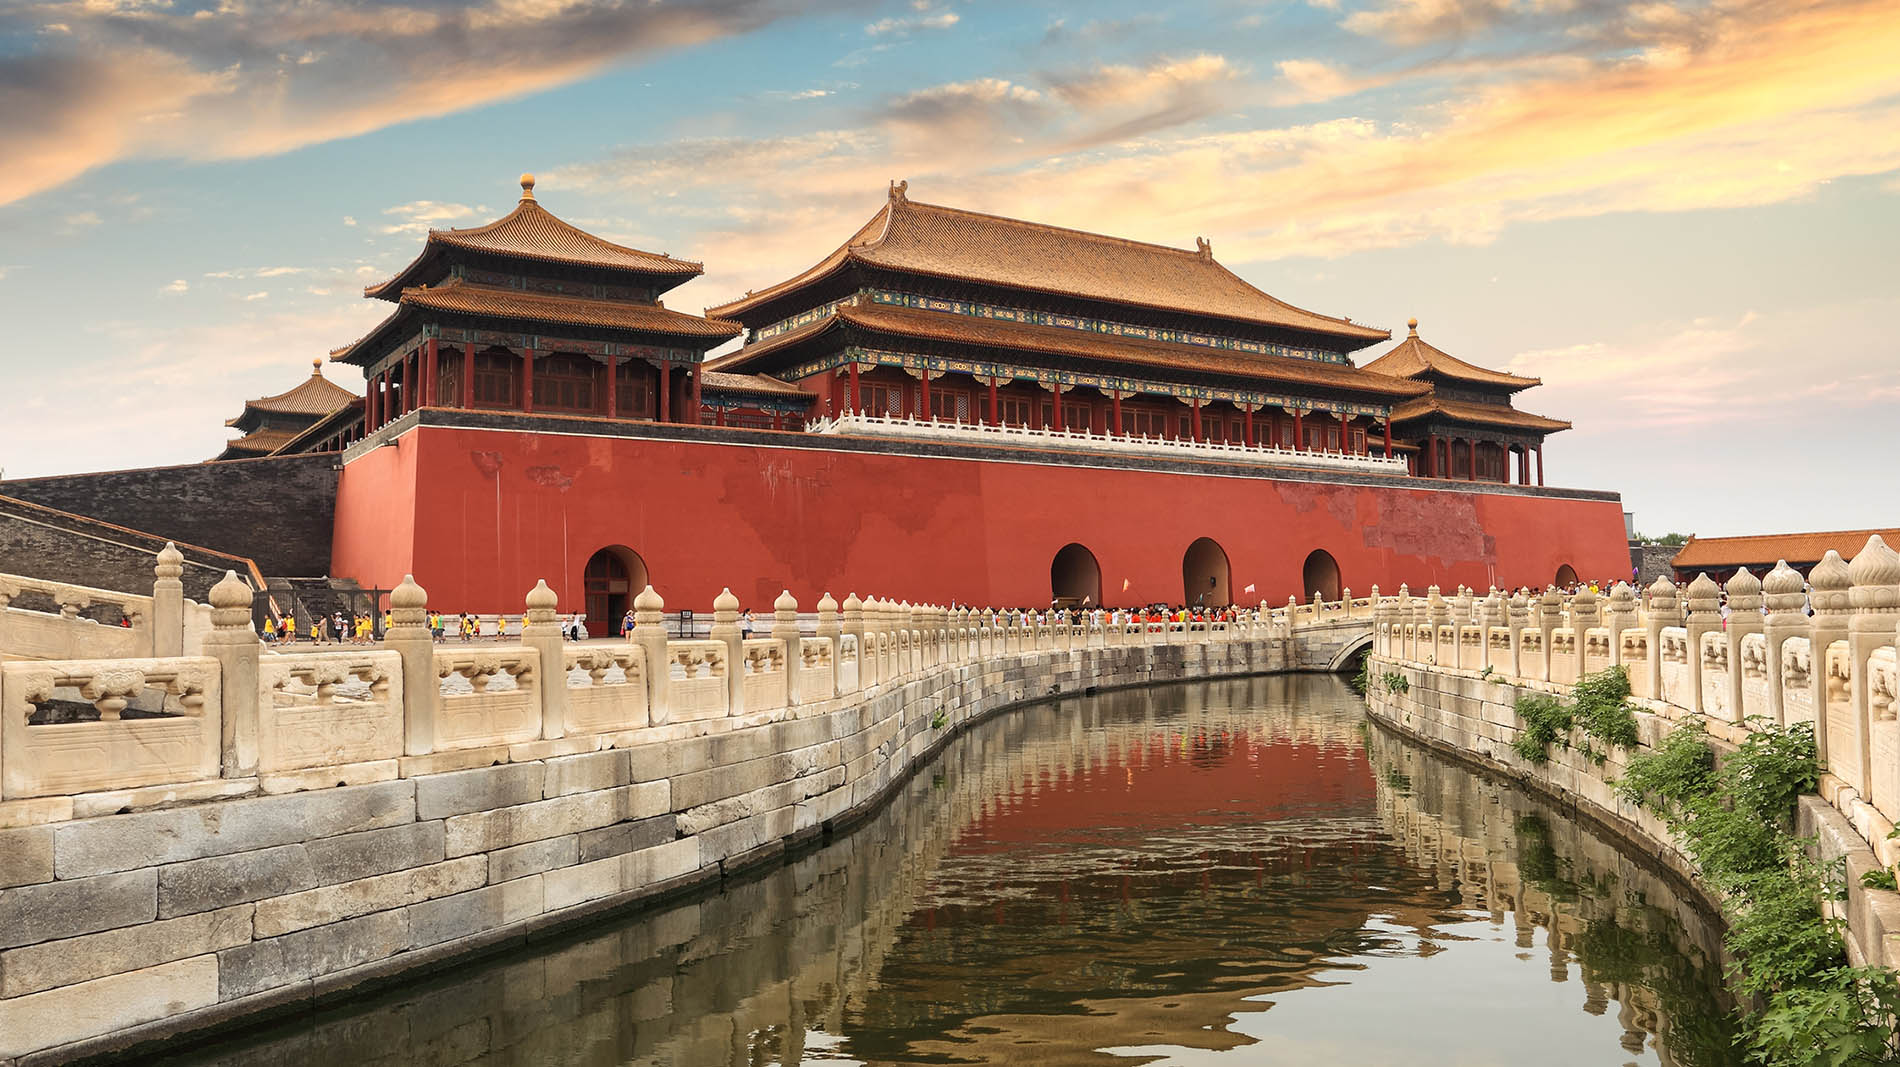 Forbidden City~Step back in time to the Ming and Qing dynasties (1368 - 1911). The Imperial Palace, nearly double the size of the Vatican, is the largest palace in the world.